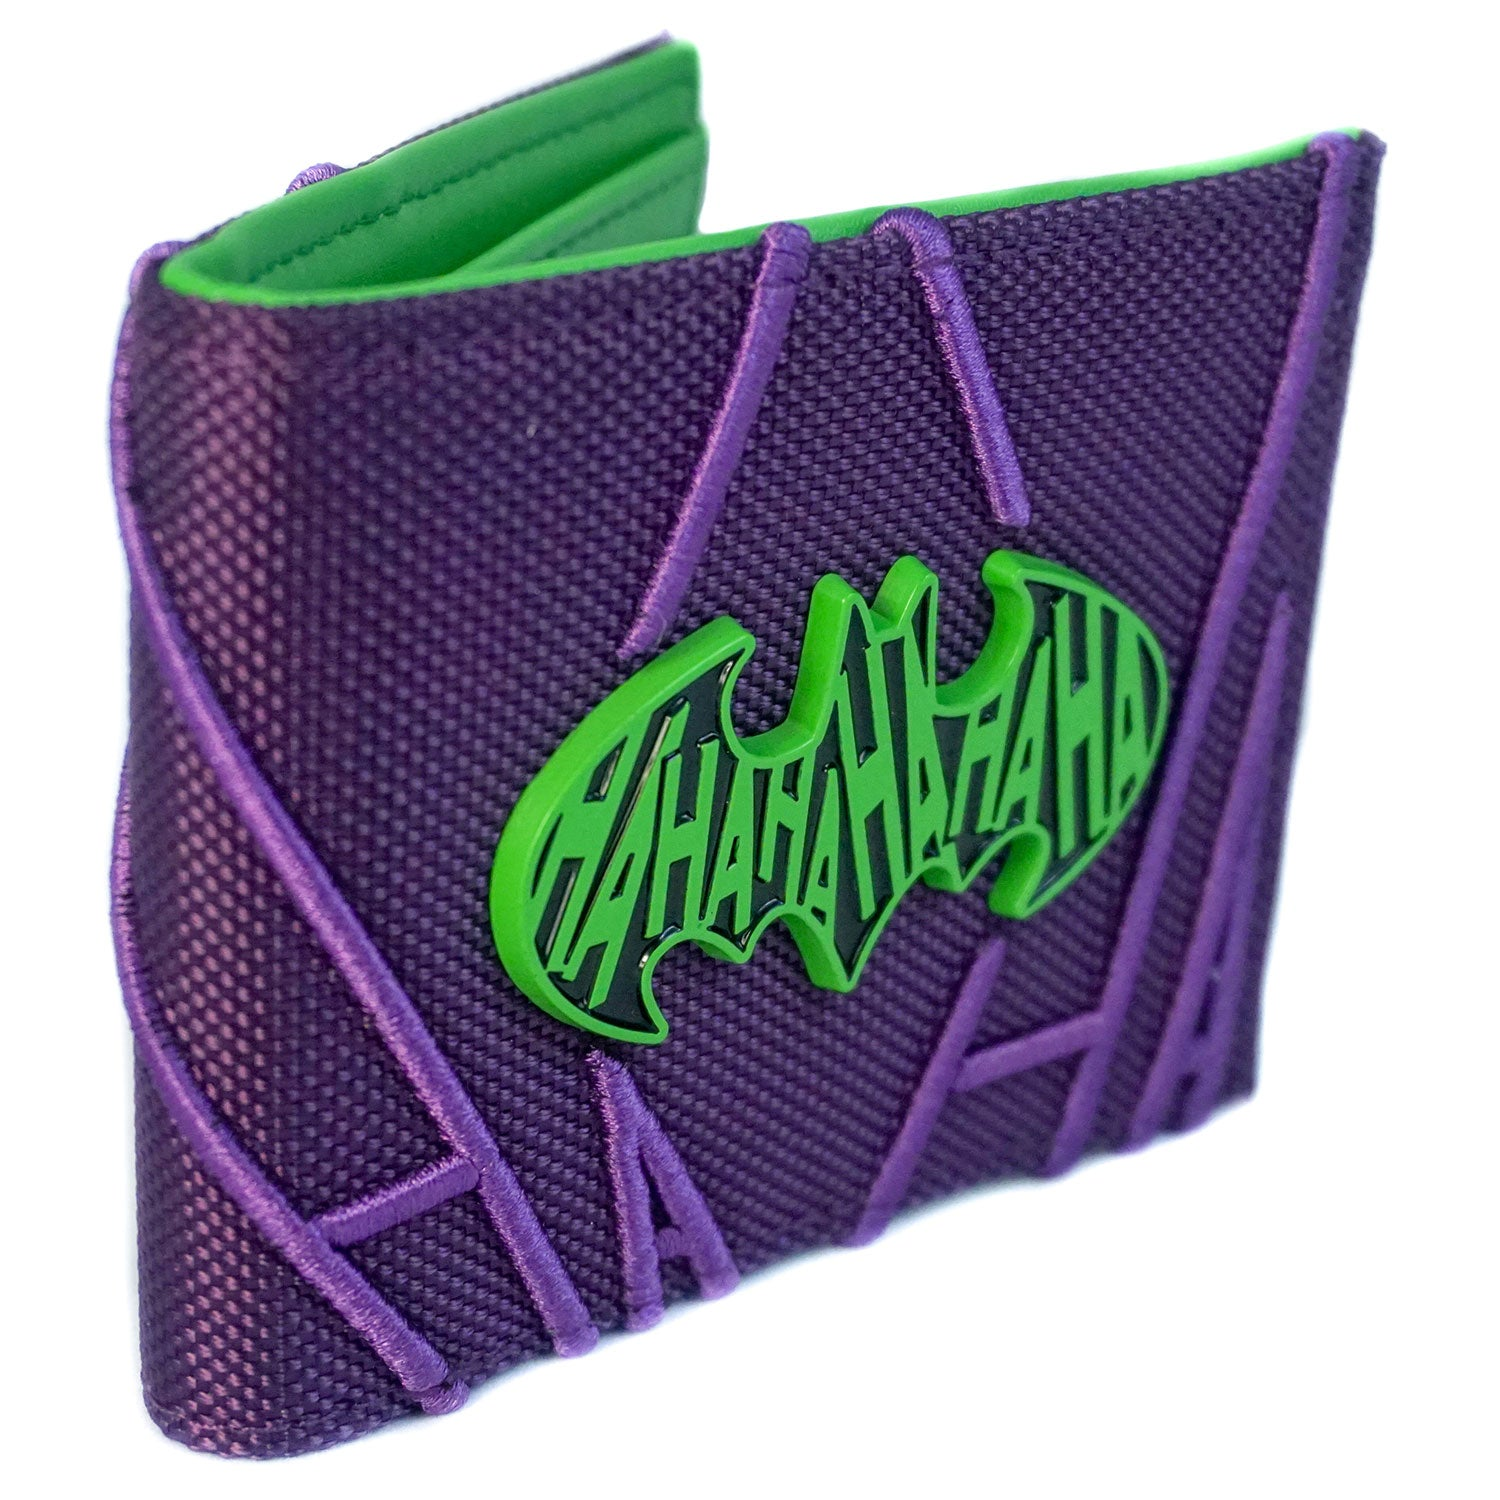 Batman Joker Bi-Fold Wallet